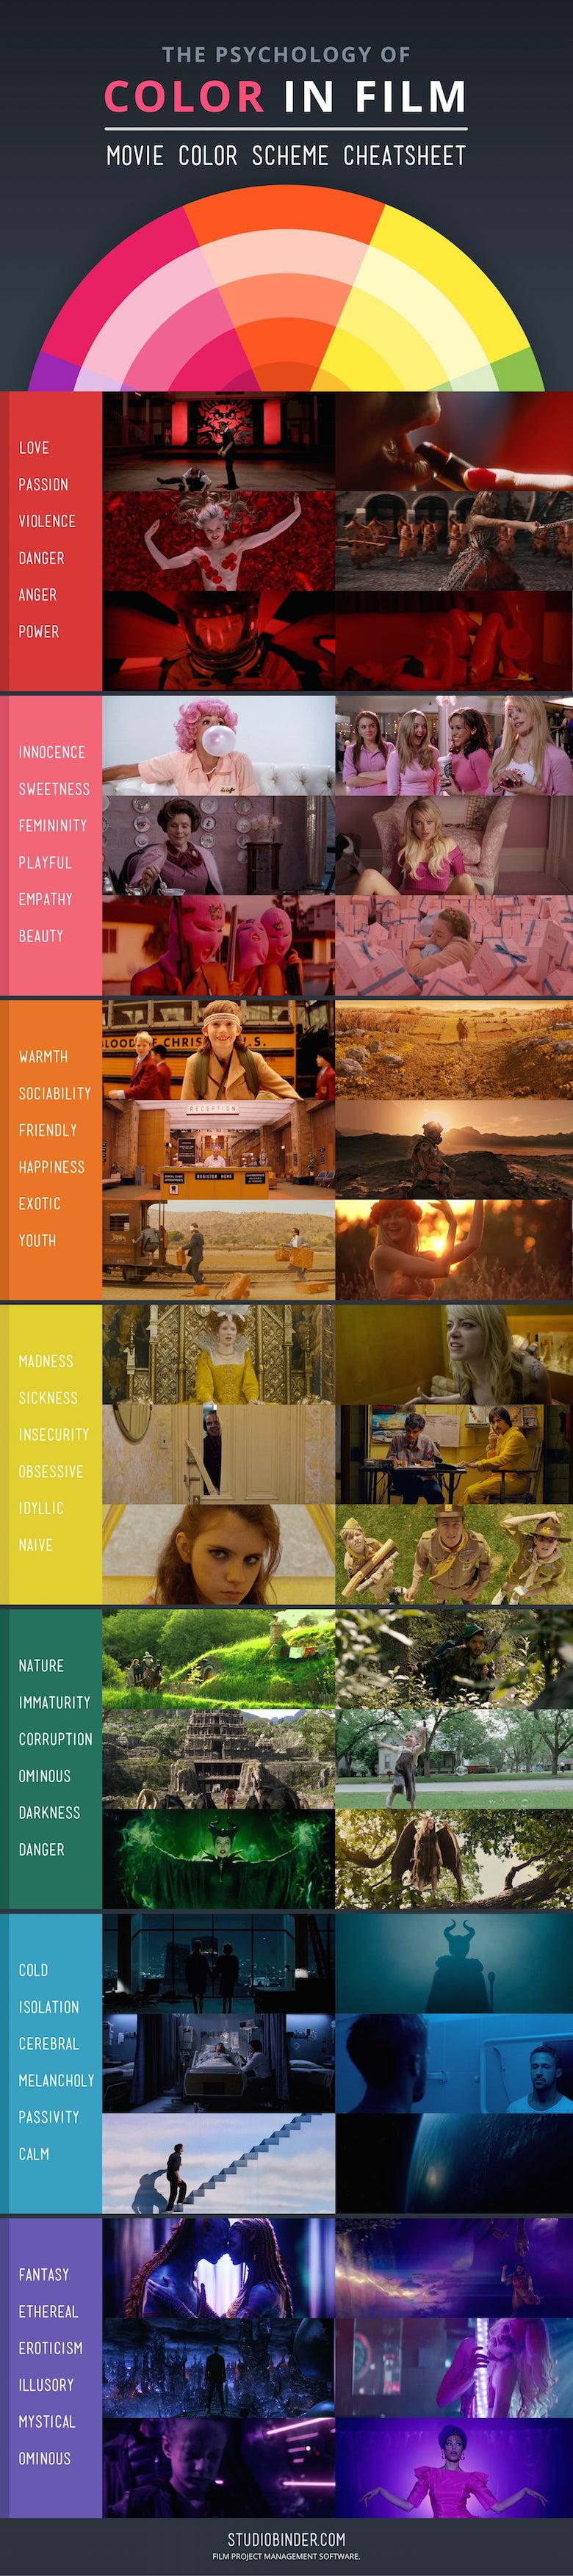 How Filmmakers Use Colors To Set The Mood Of A Film